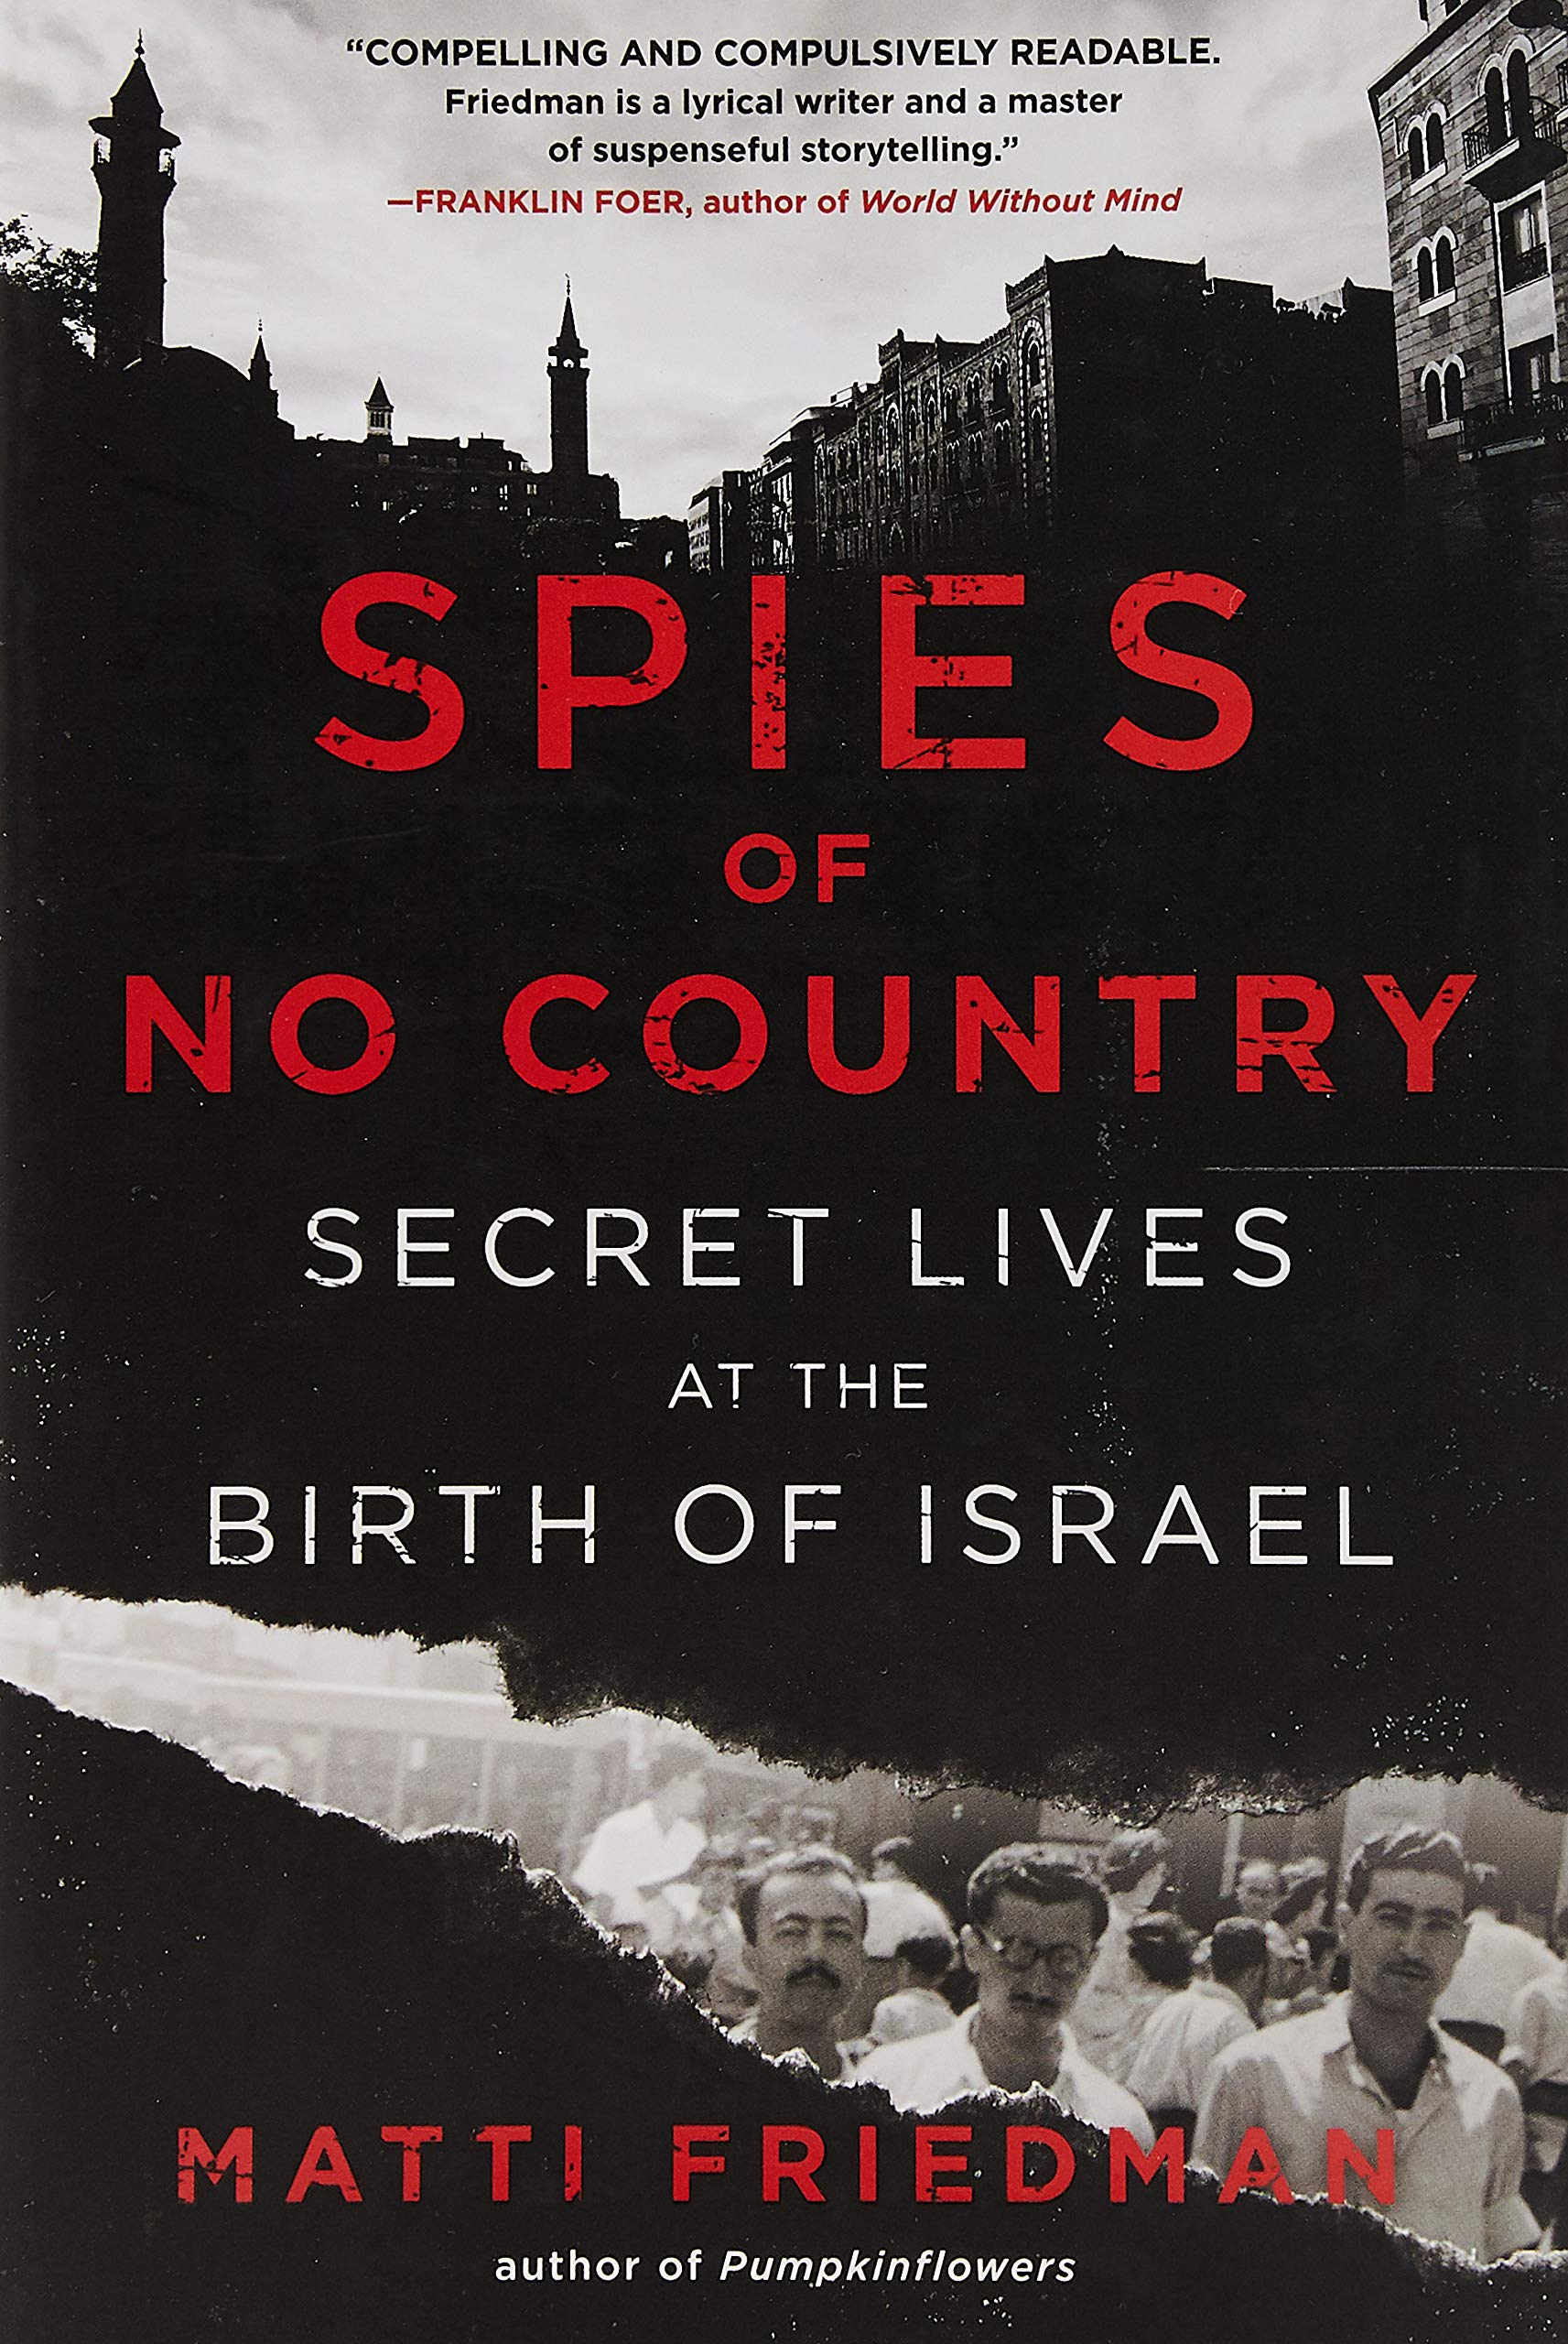 Spies Of No Country Secret Lives At The Birth Of Israel